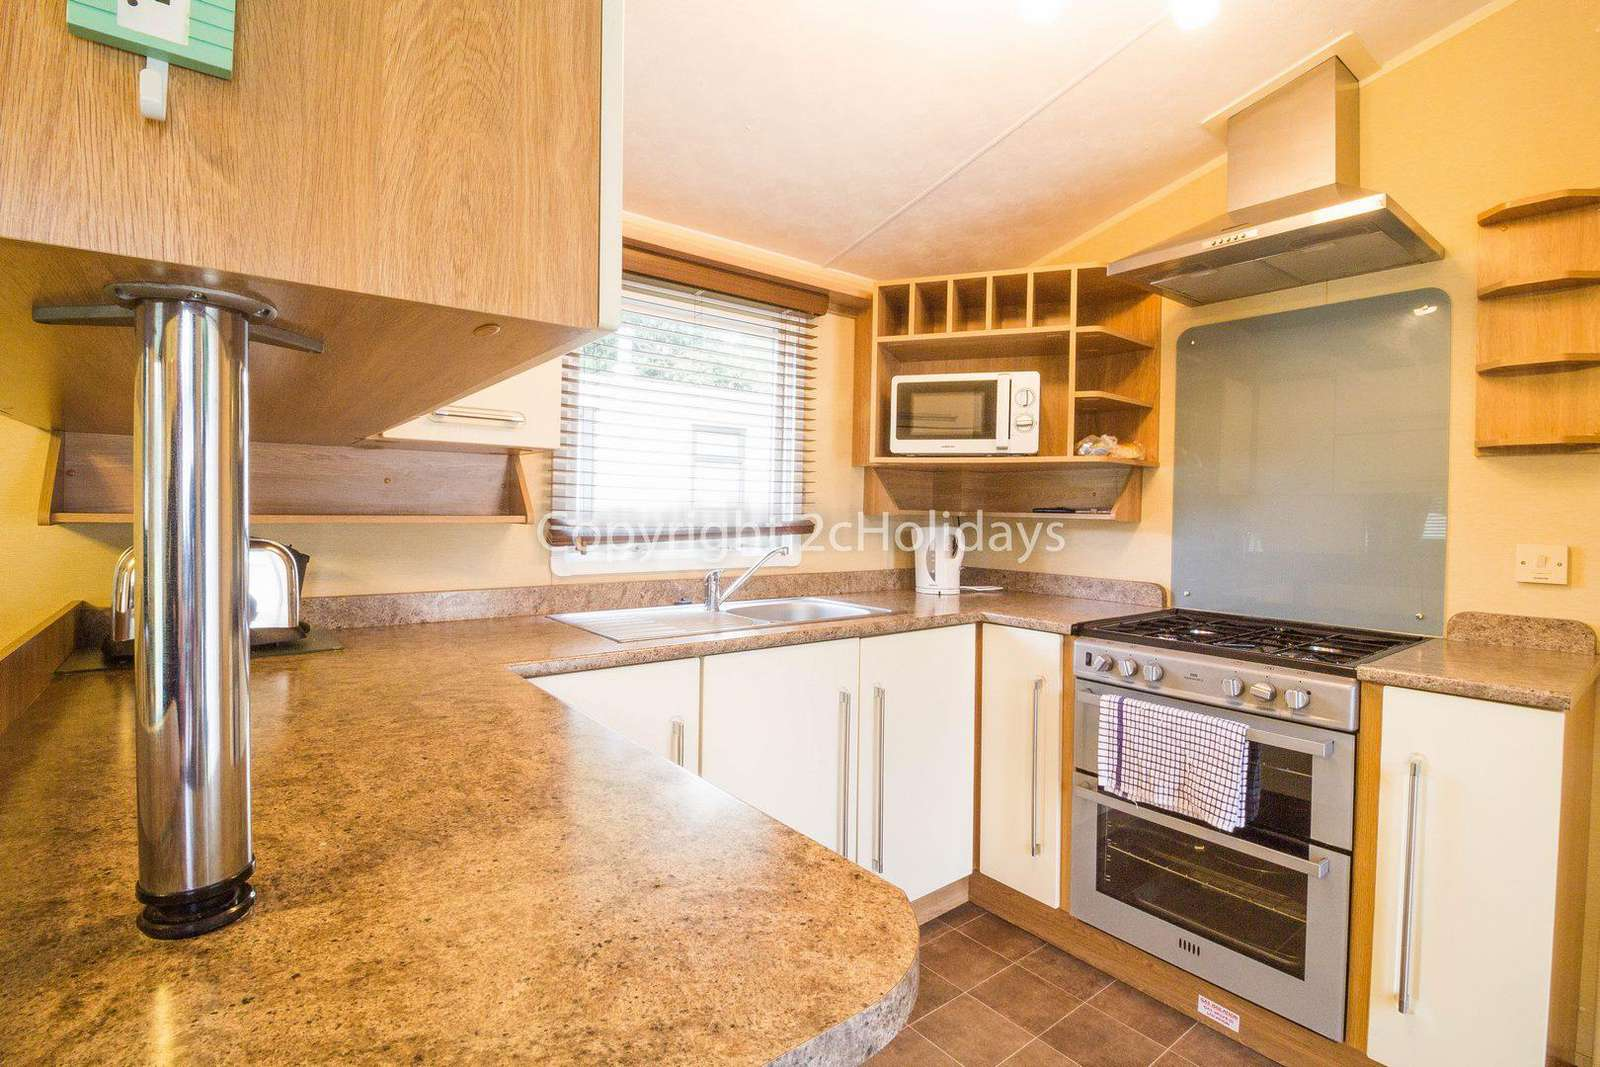 Modern and Stylish kitchen in this 8 berth luxury caravan at the Wild Duck Holiday Park.